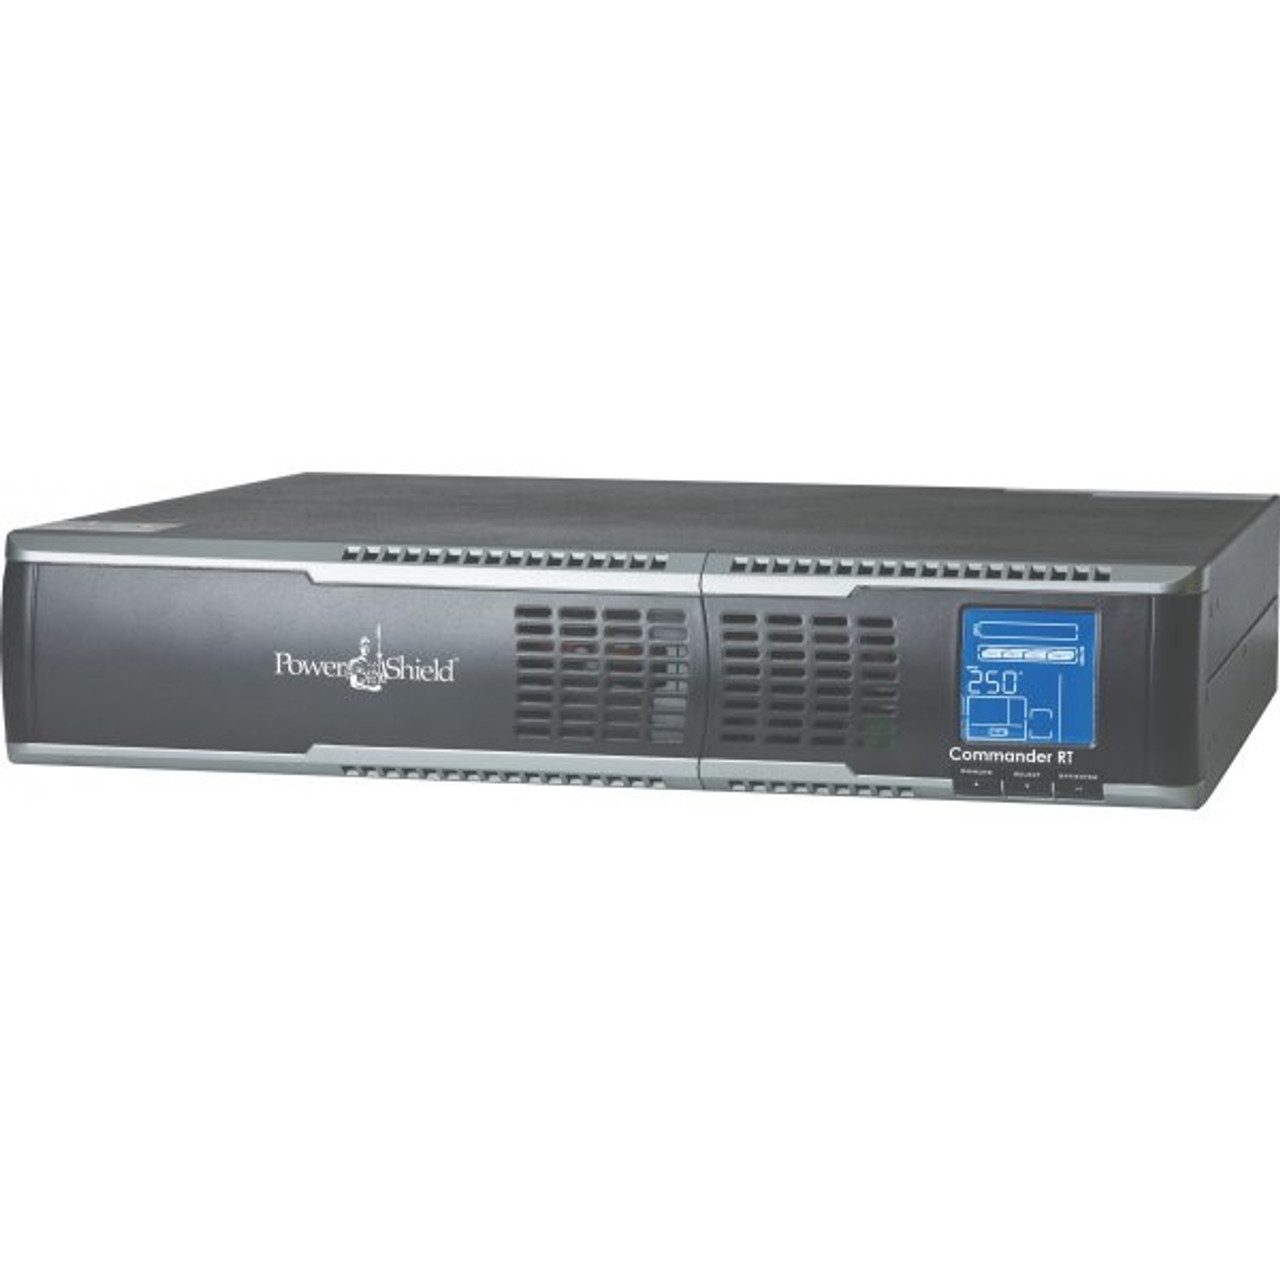 Product image for PowerShield Commander RT 1100VA Line Interactive 2RU Rack/Tower UPS   CX Computer Superstore